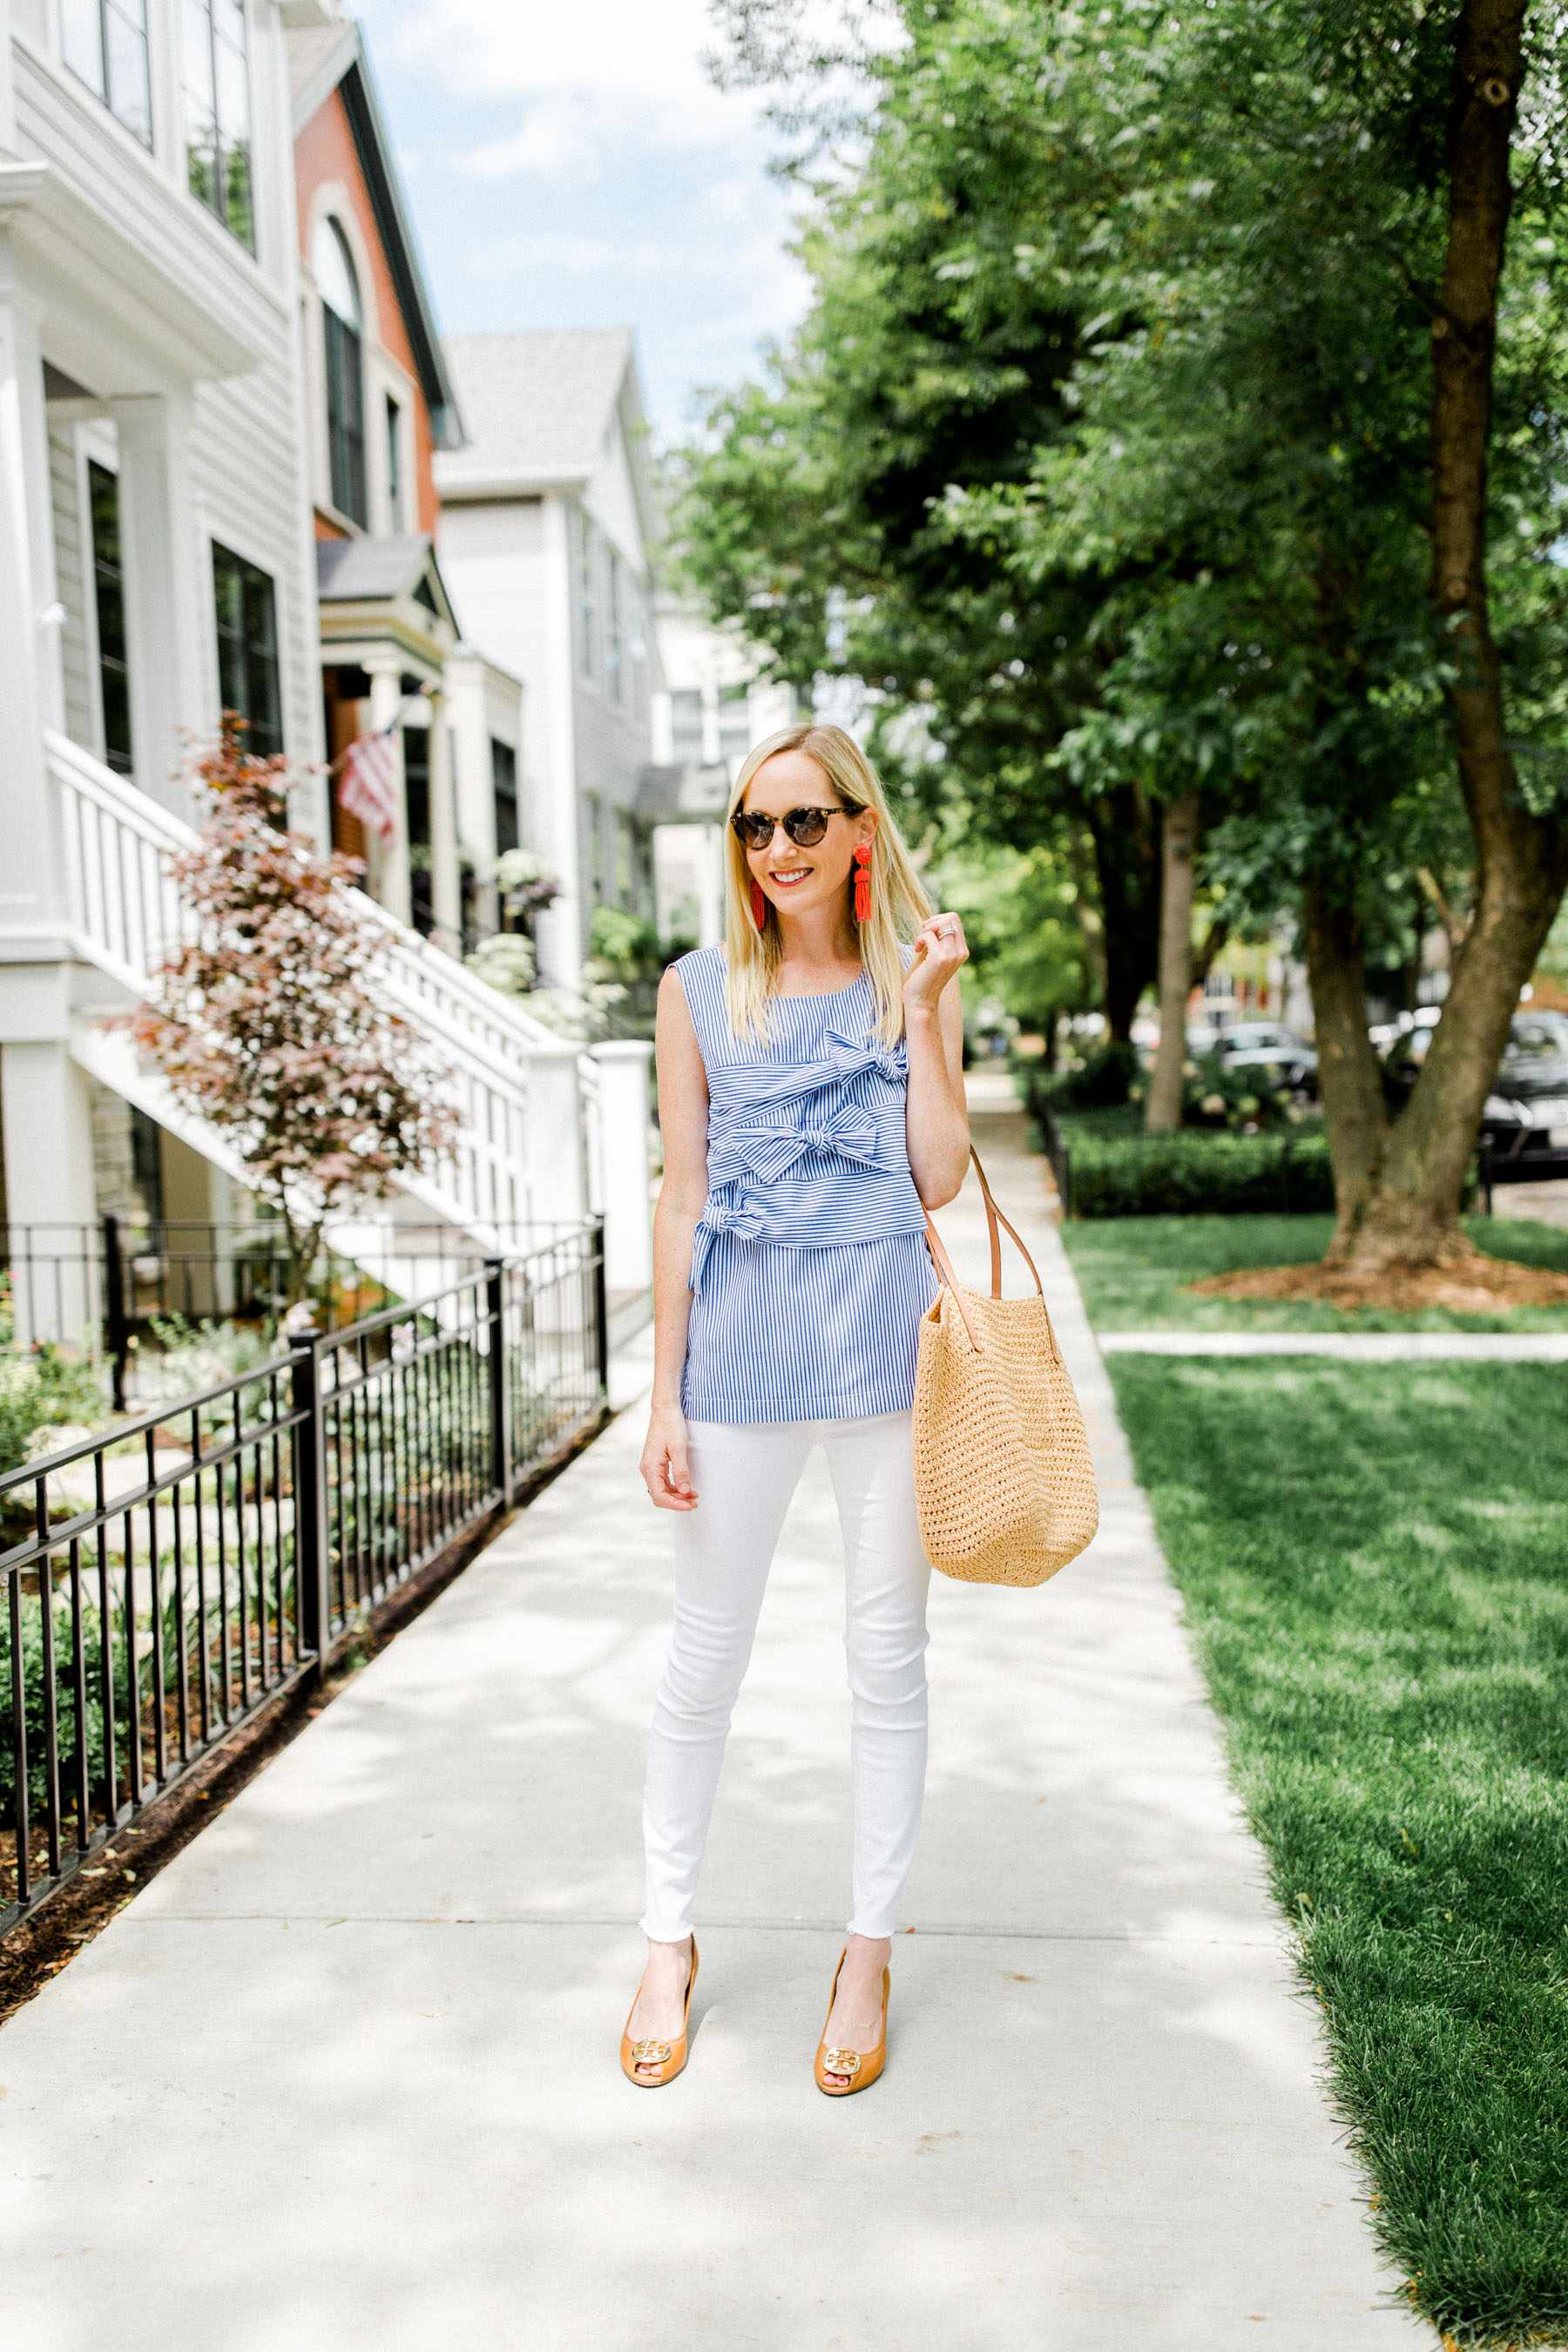 Bow Top / Tory Burch Wedges / Straw Tote / Lisi Lerch Earrings /ThirdLove Strapless Bra